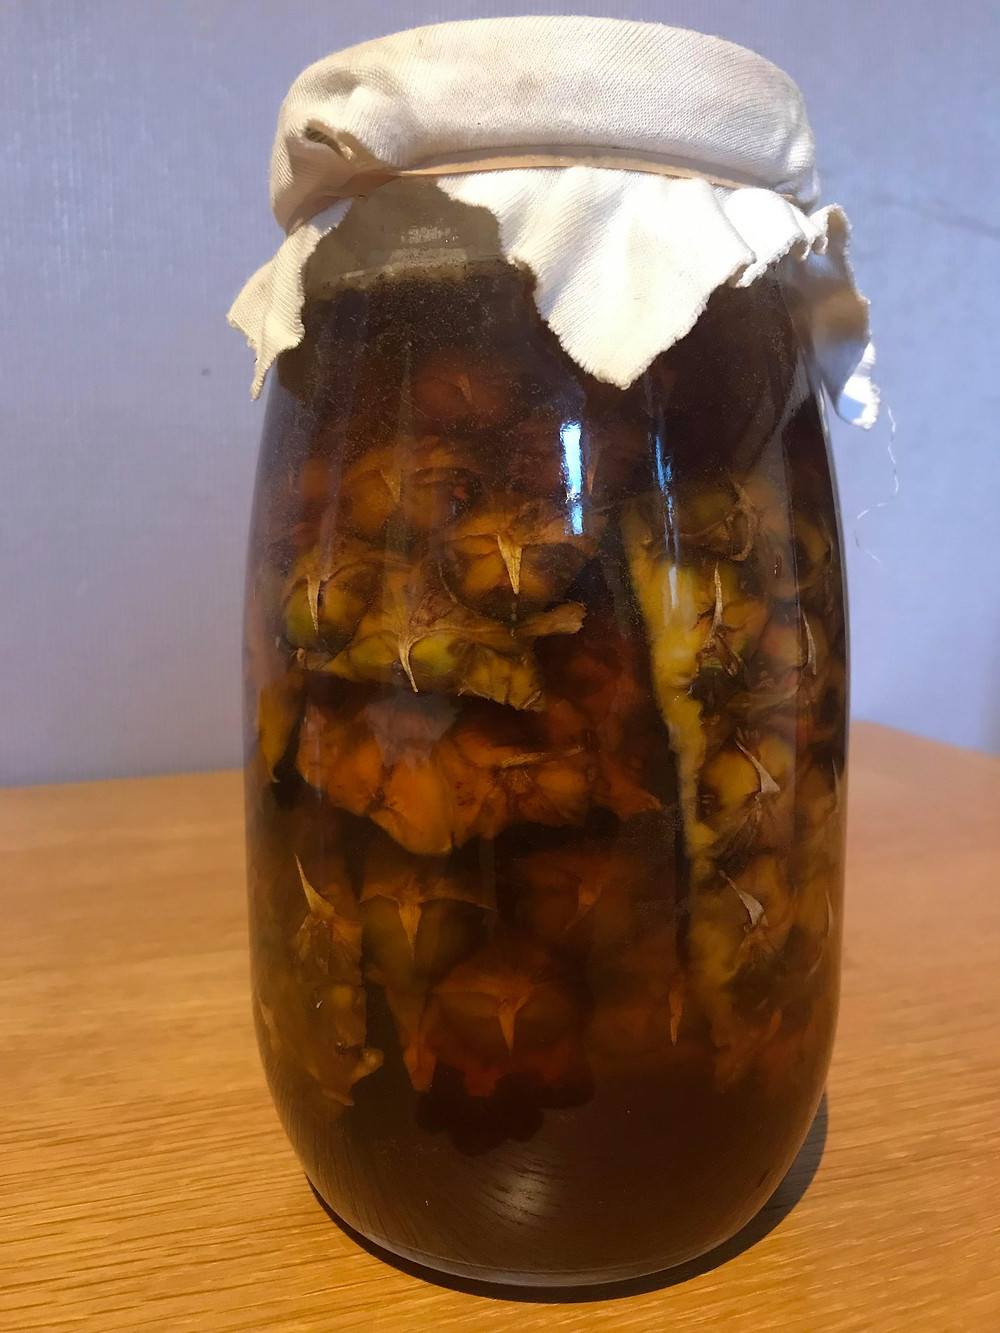 Pineapple peel fermented with brown sugar and cinnamon to make Tepache